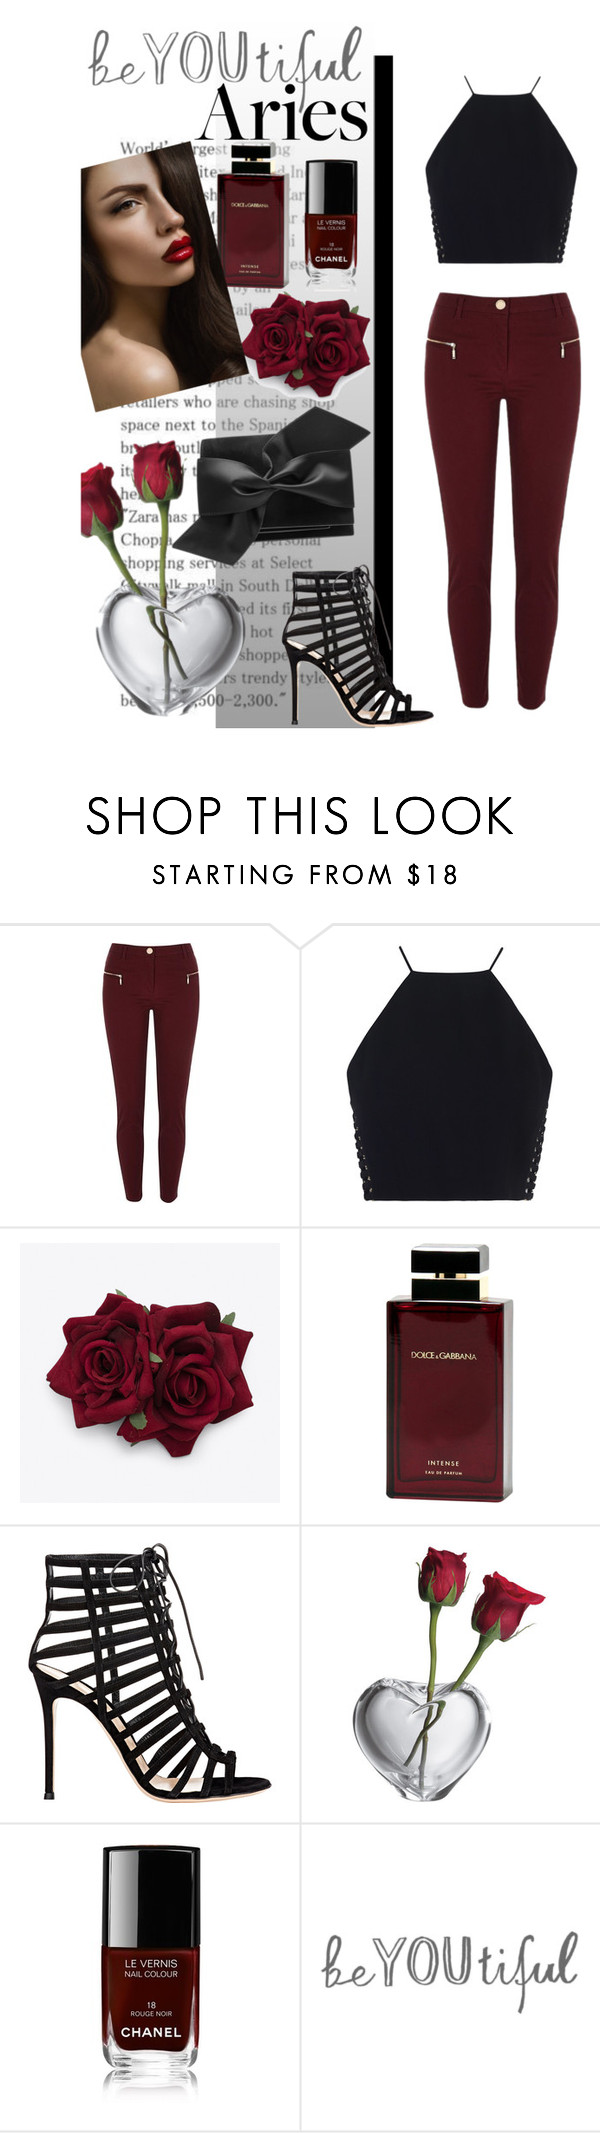 """Aries-fashion horoscope!"" by vicky164 ❤ liked on Polyvore featuring River Island, Zimmermann, Dolce&Gabbana, Gianvito Rossi, Simon Pearce, Chanel, Victoria Beckham, fashionhoroscope and stylehoroscope"